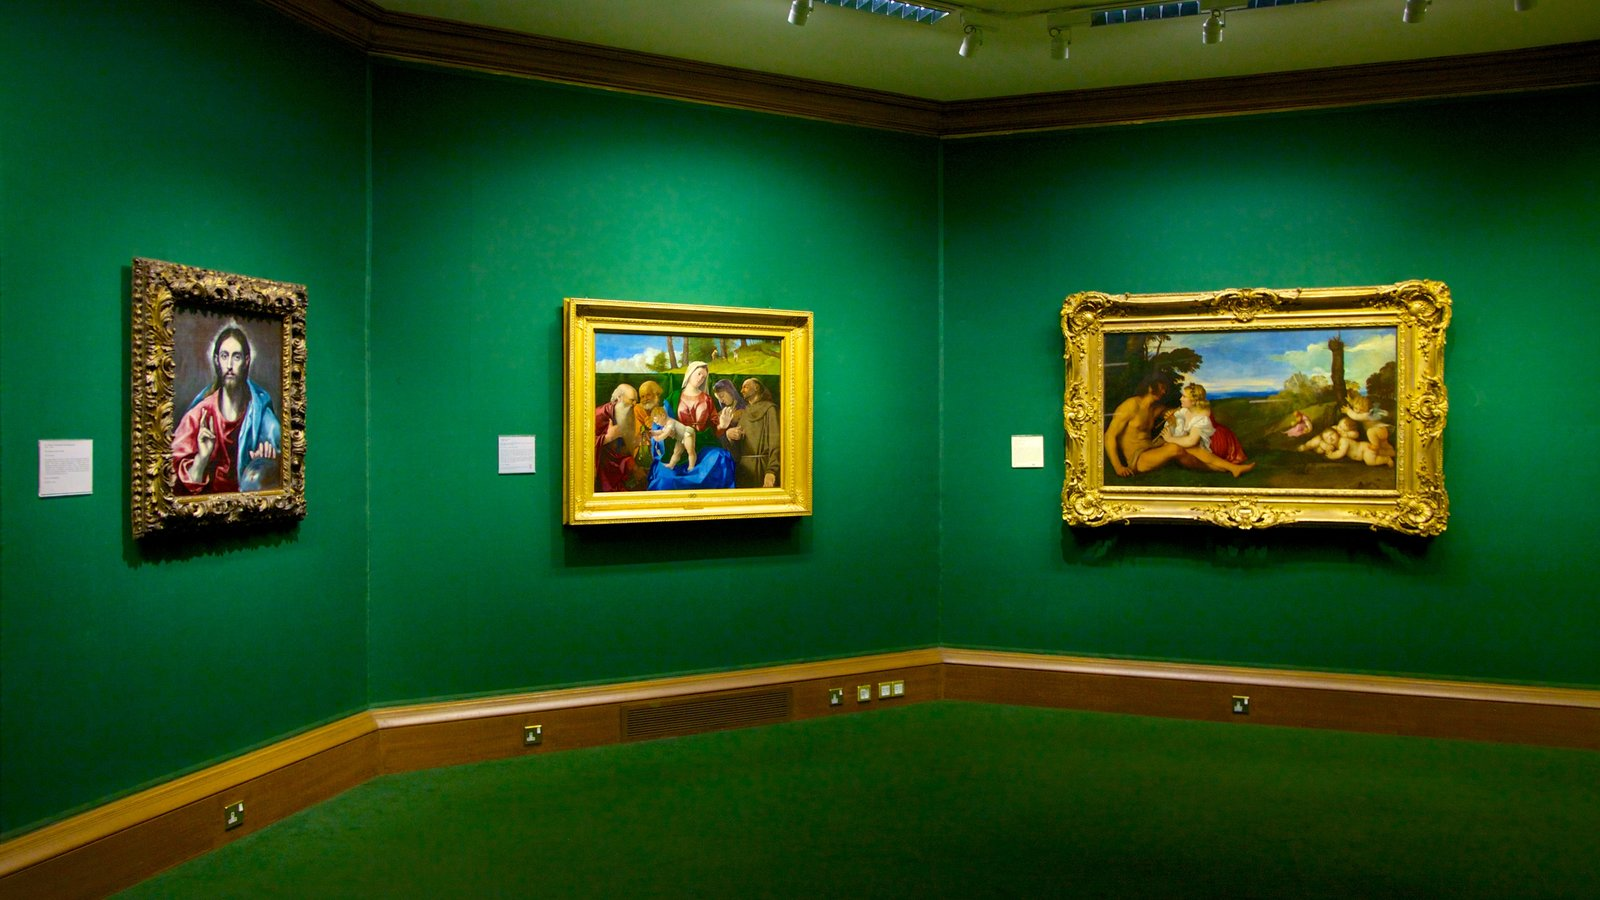 Scottish National Gallery featuring art and interior views